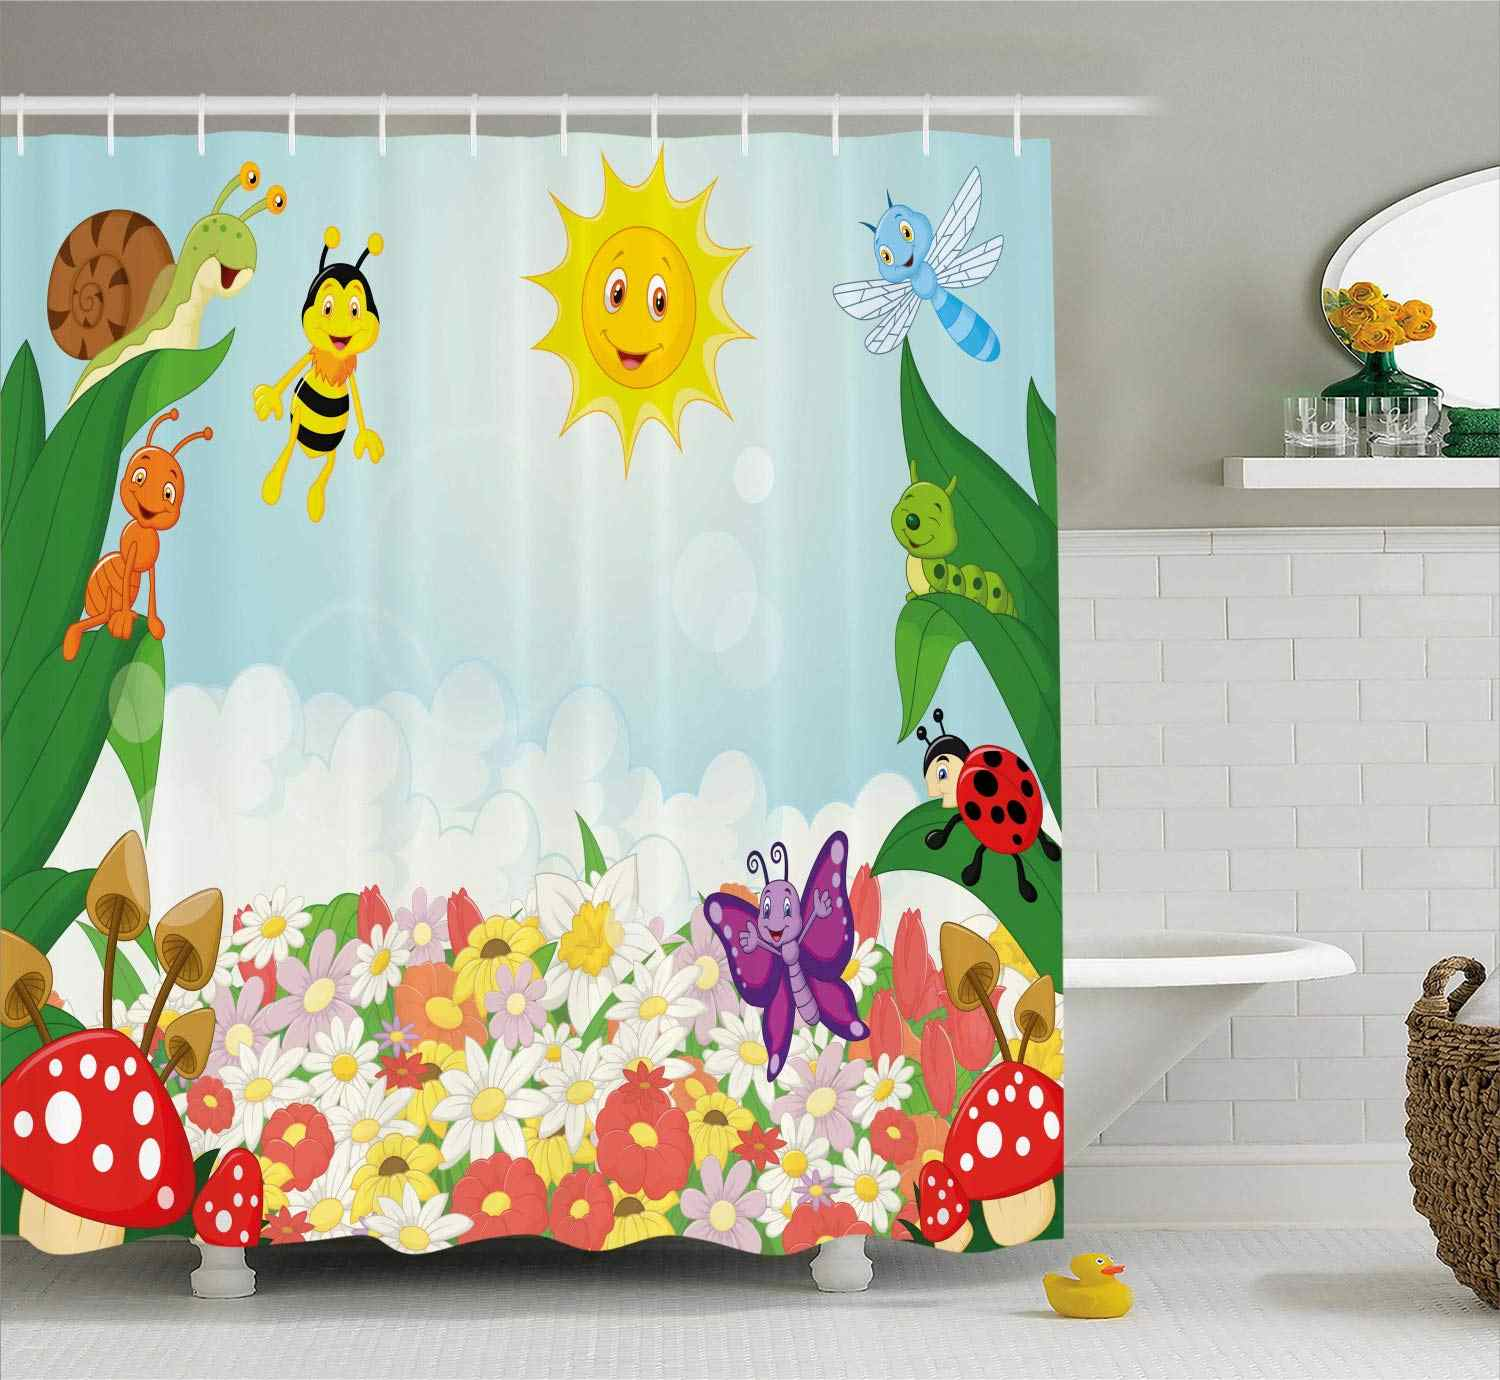 Kids Shower Curtain Bee Butterfly Ant Ladybug Snail Floral Mushroom  Baby Animal Spring Image Bathroom Set